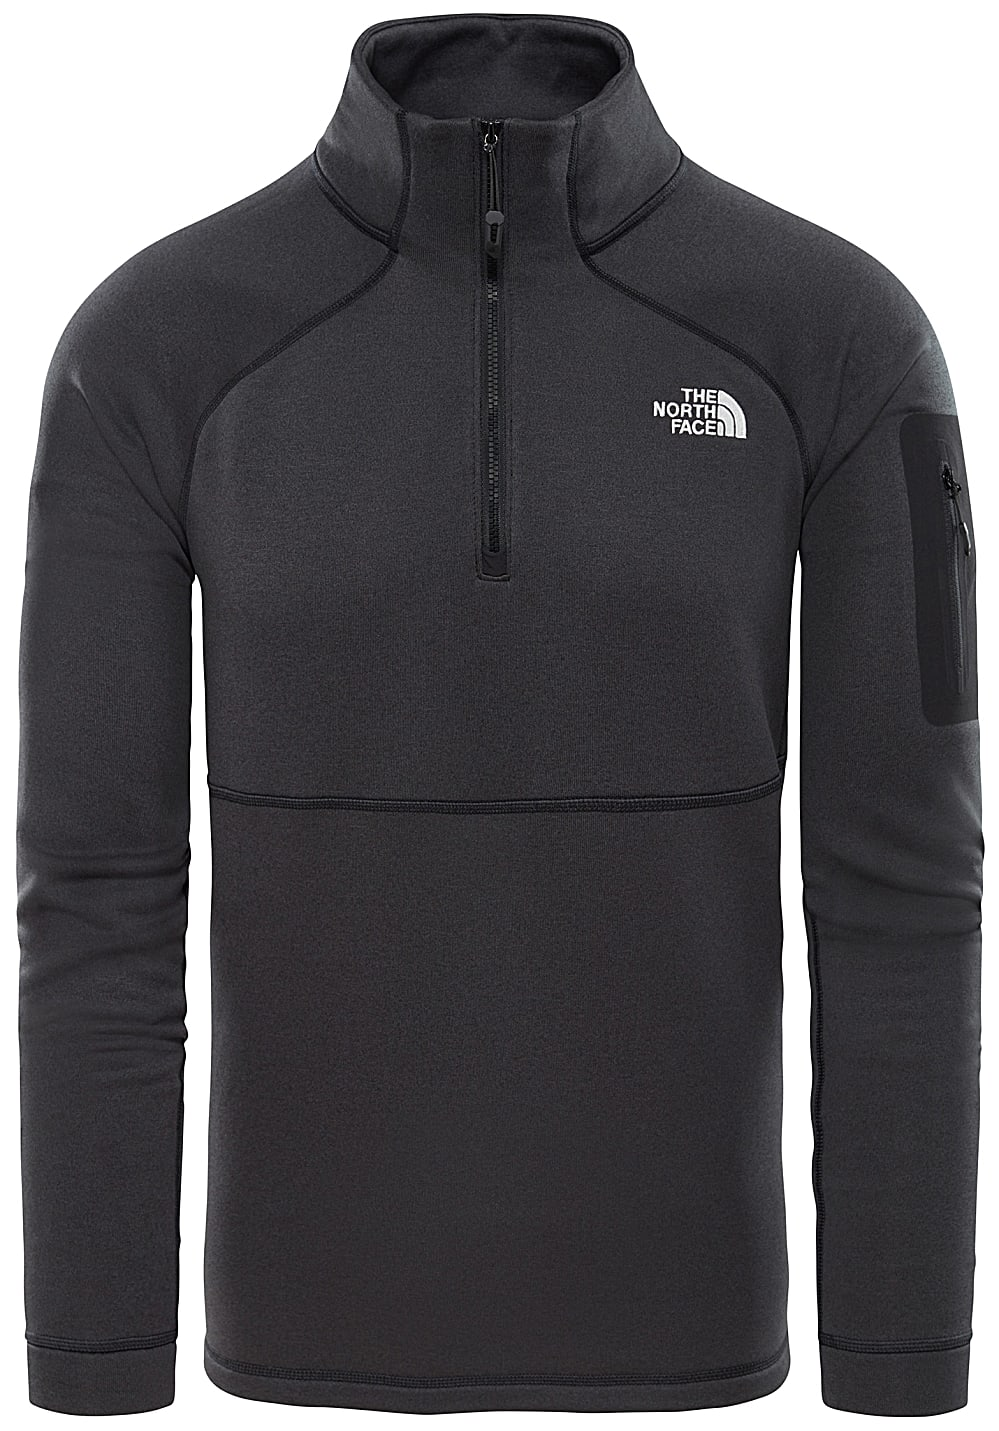 design di qualità 3252d 30598 THE NORTH FACE Impendor Power Dry 1/4 Zip - Maglione in pile per Uomo - Nero